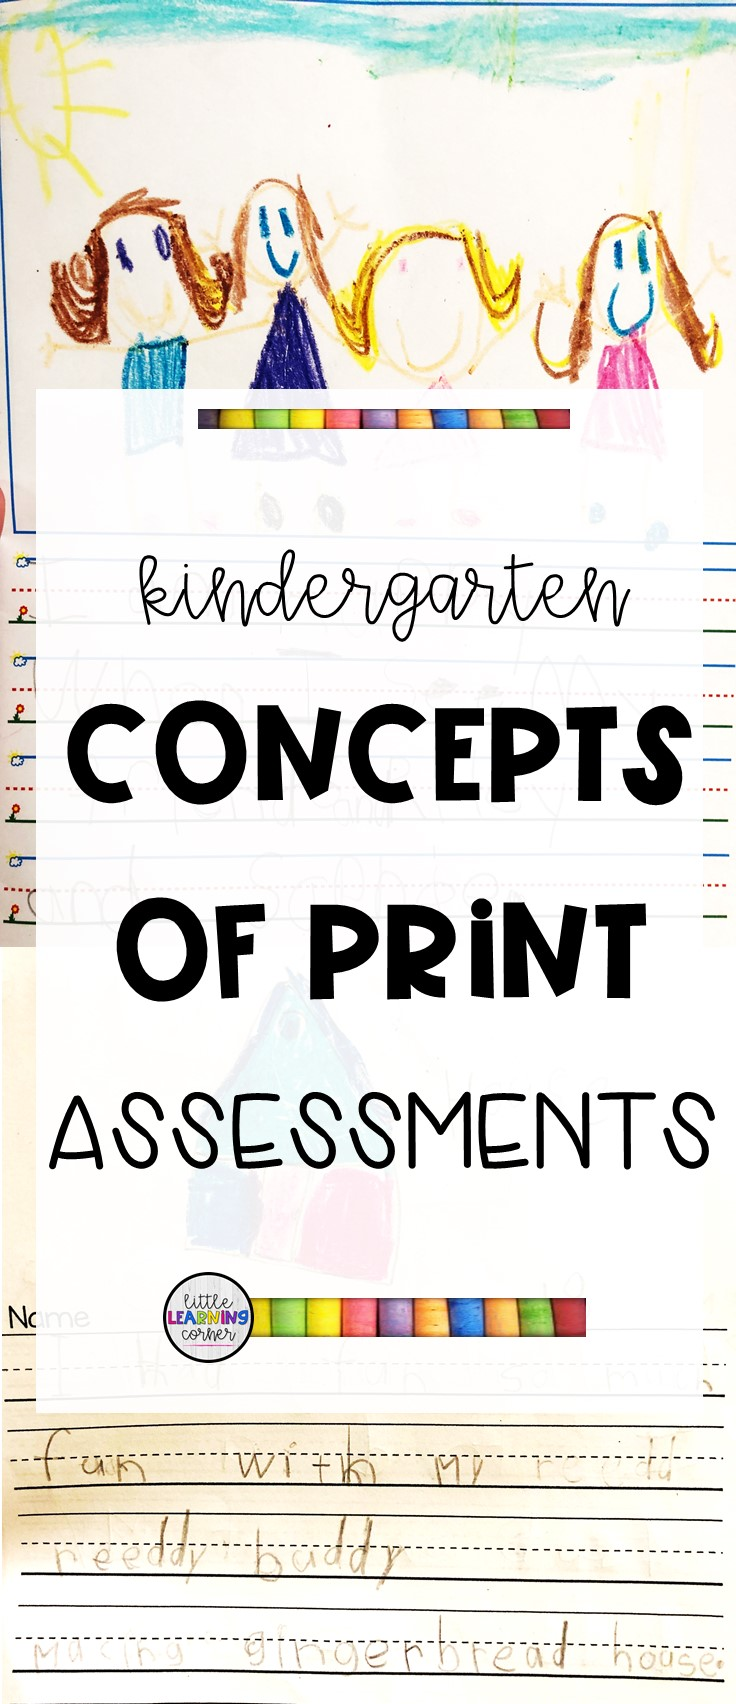 concepts-of-print-assessment-pin